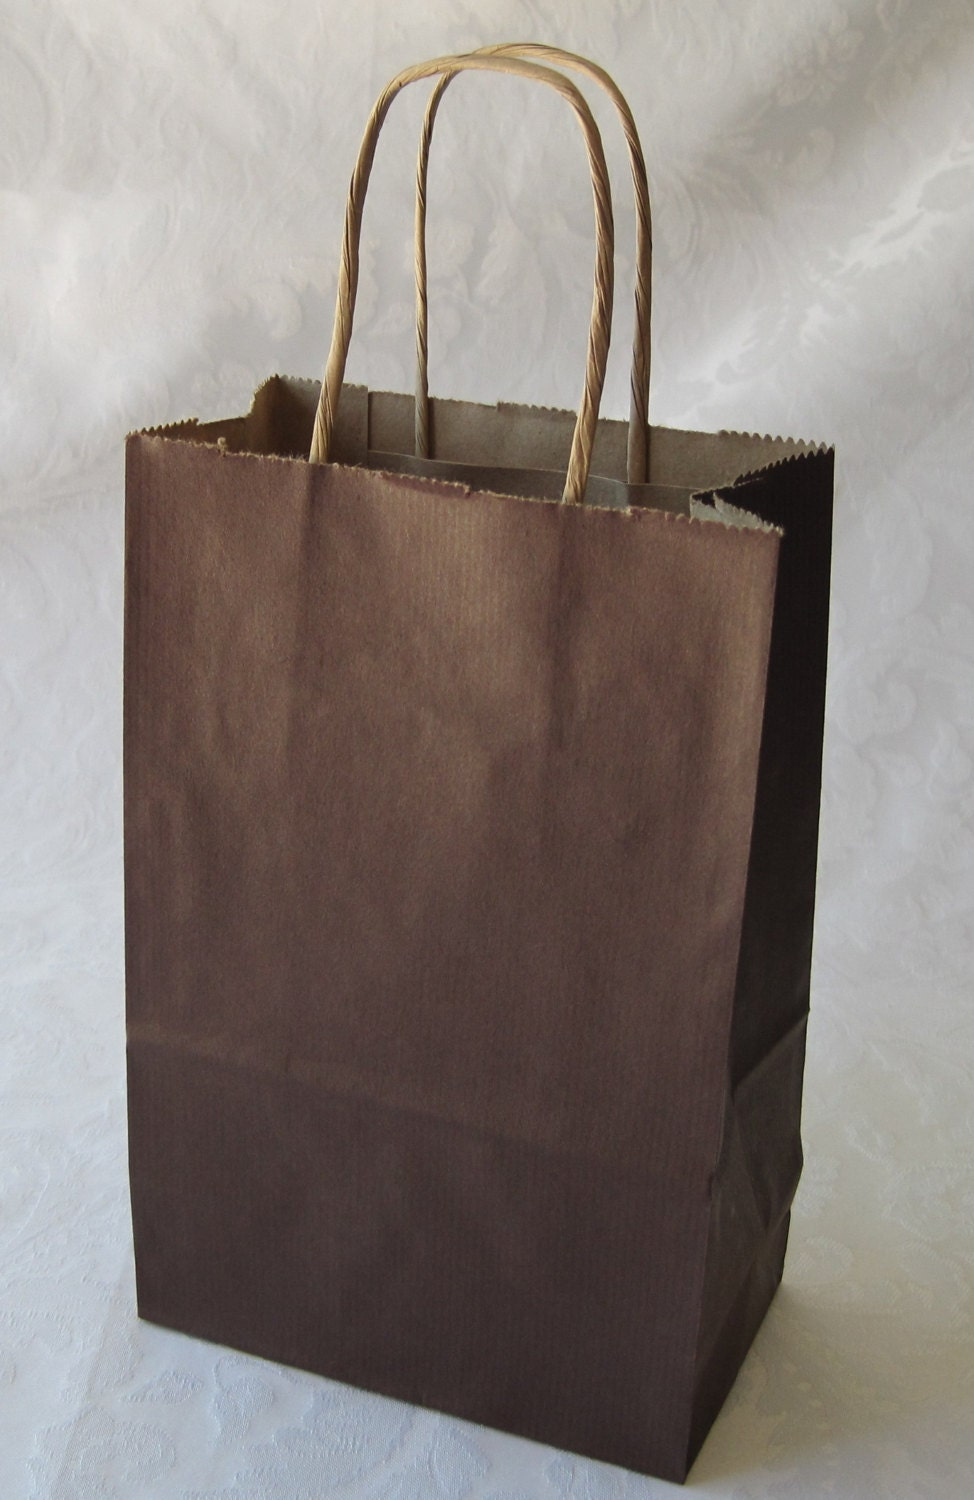 Paper bags kraft paper bags brown bags gift bags by jetjewels for Brown paper craft bags